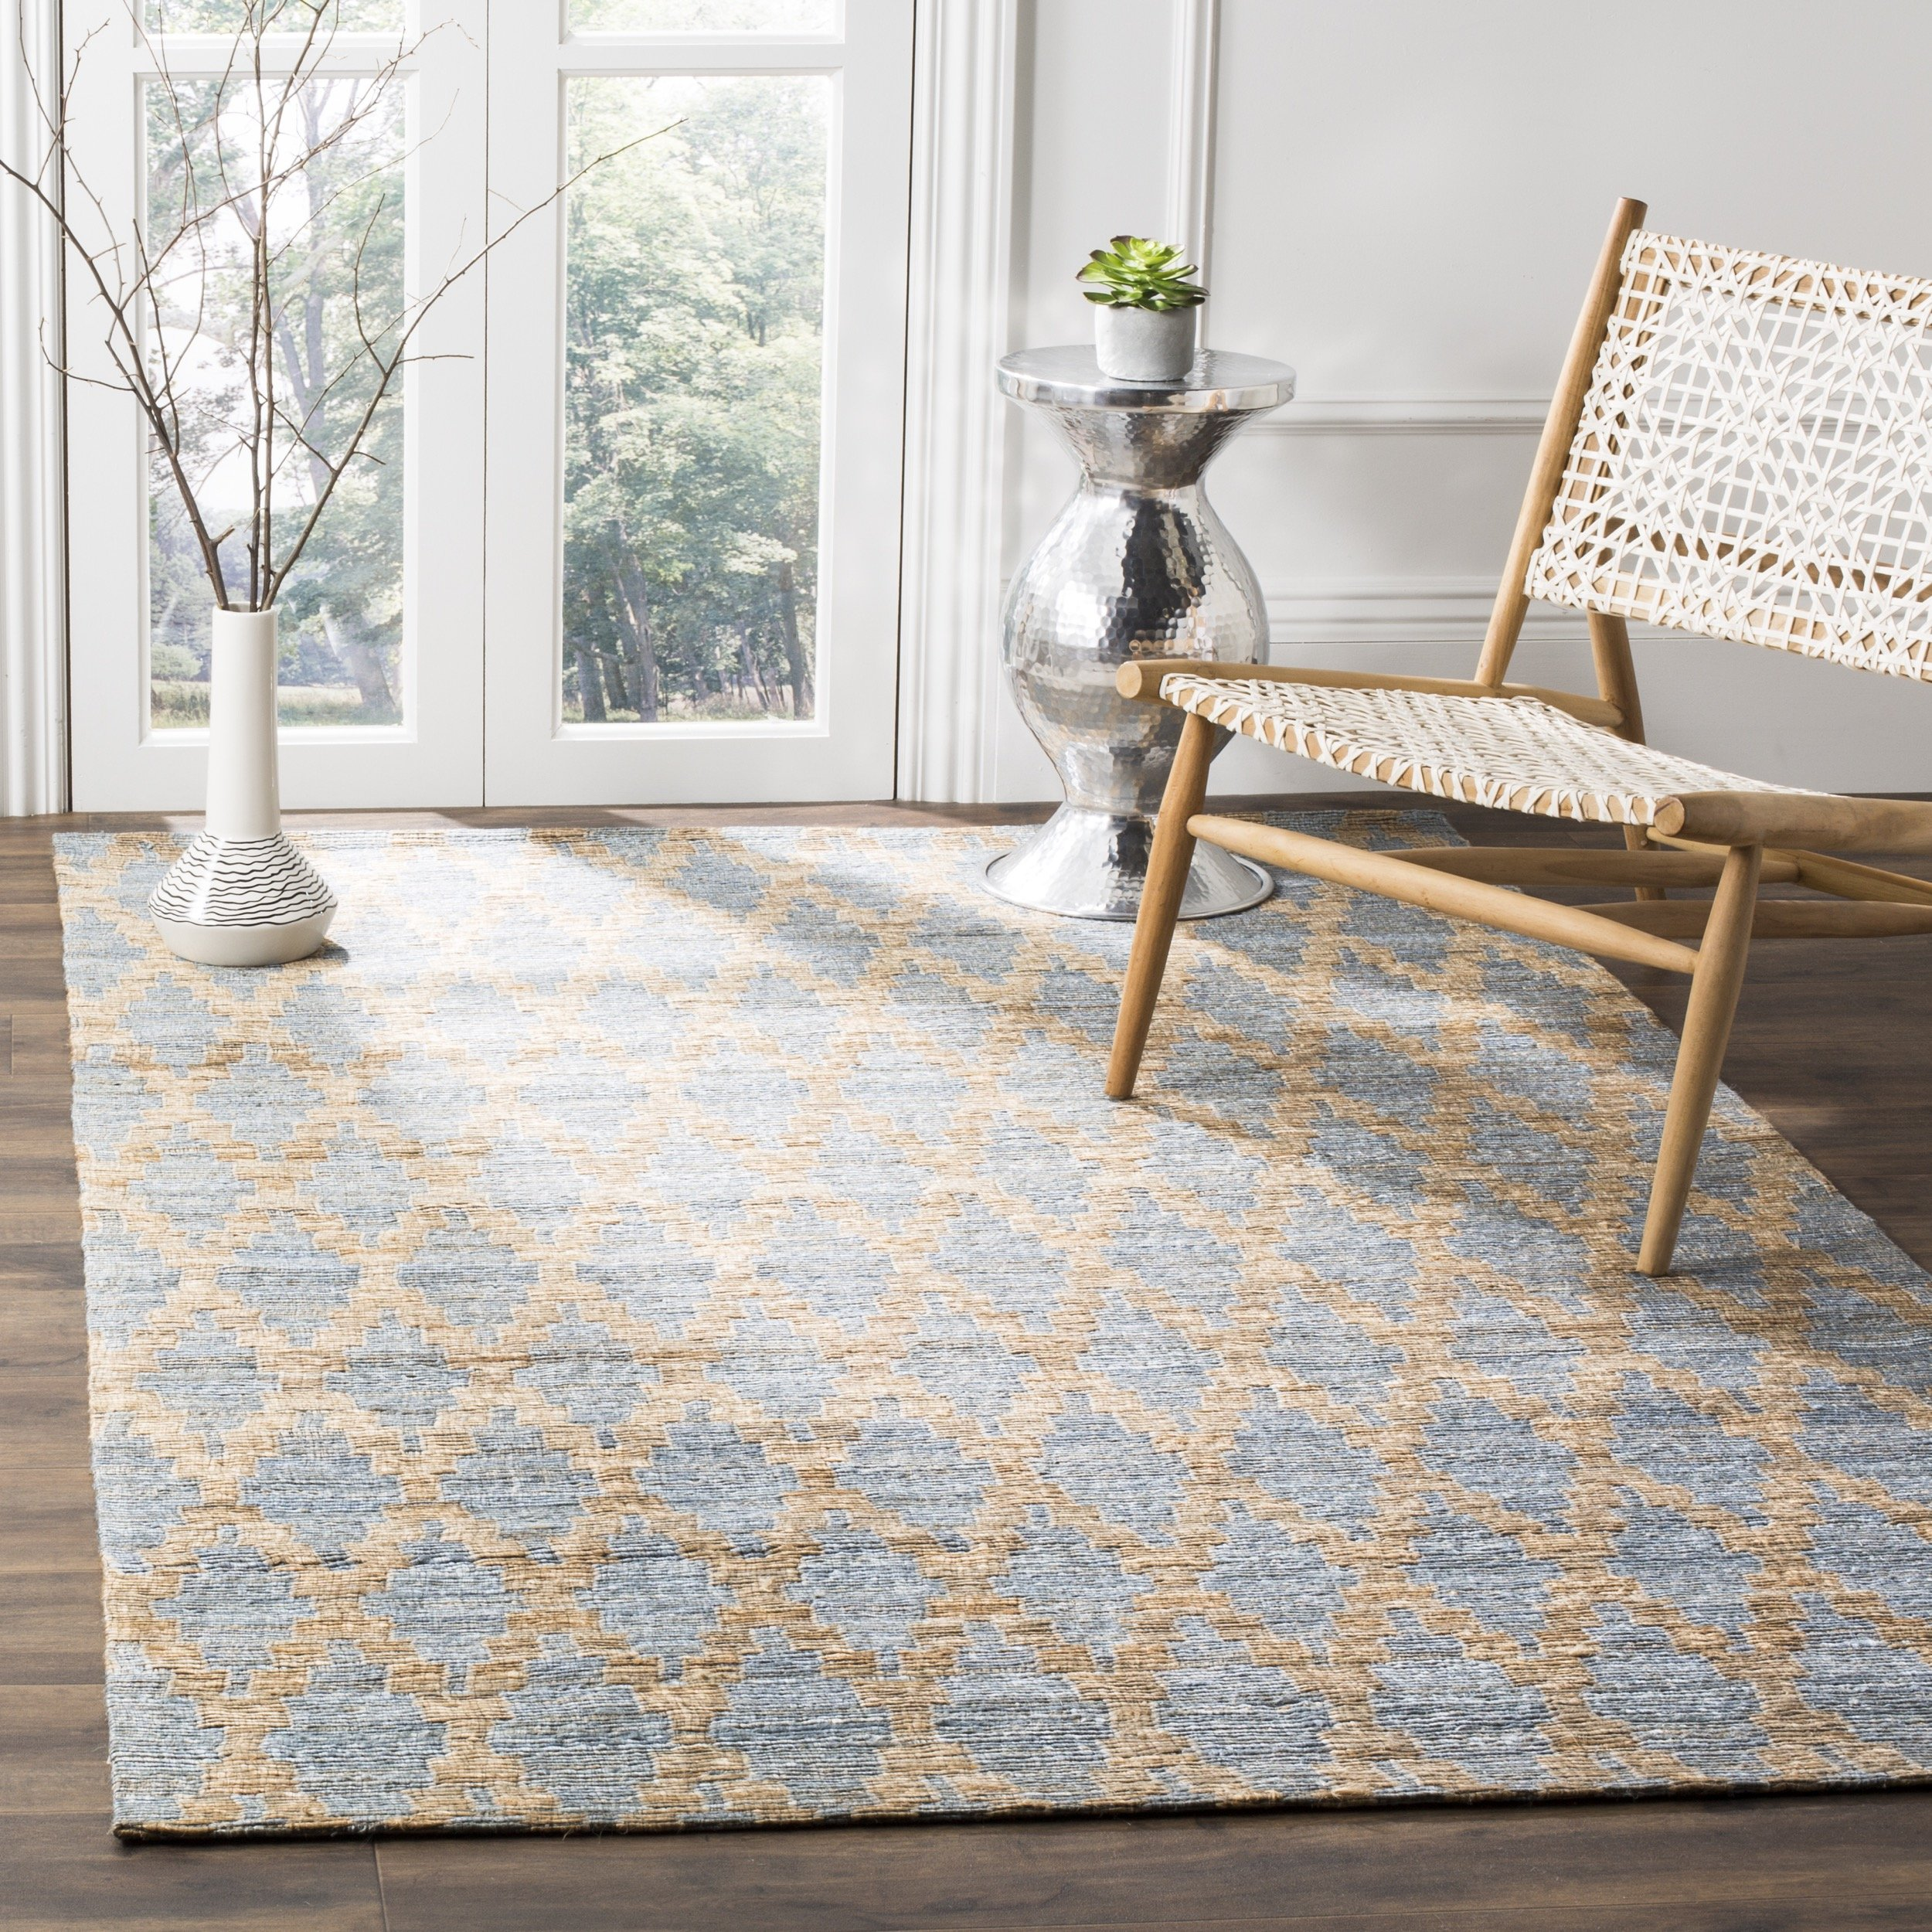 Safavieh Cape Cod Collection CAP413A Hand Woven Geometric Light Blue and Gold Jute and Cotton Area Rug (5' x 8') by Safavieh